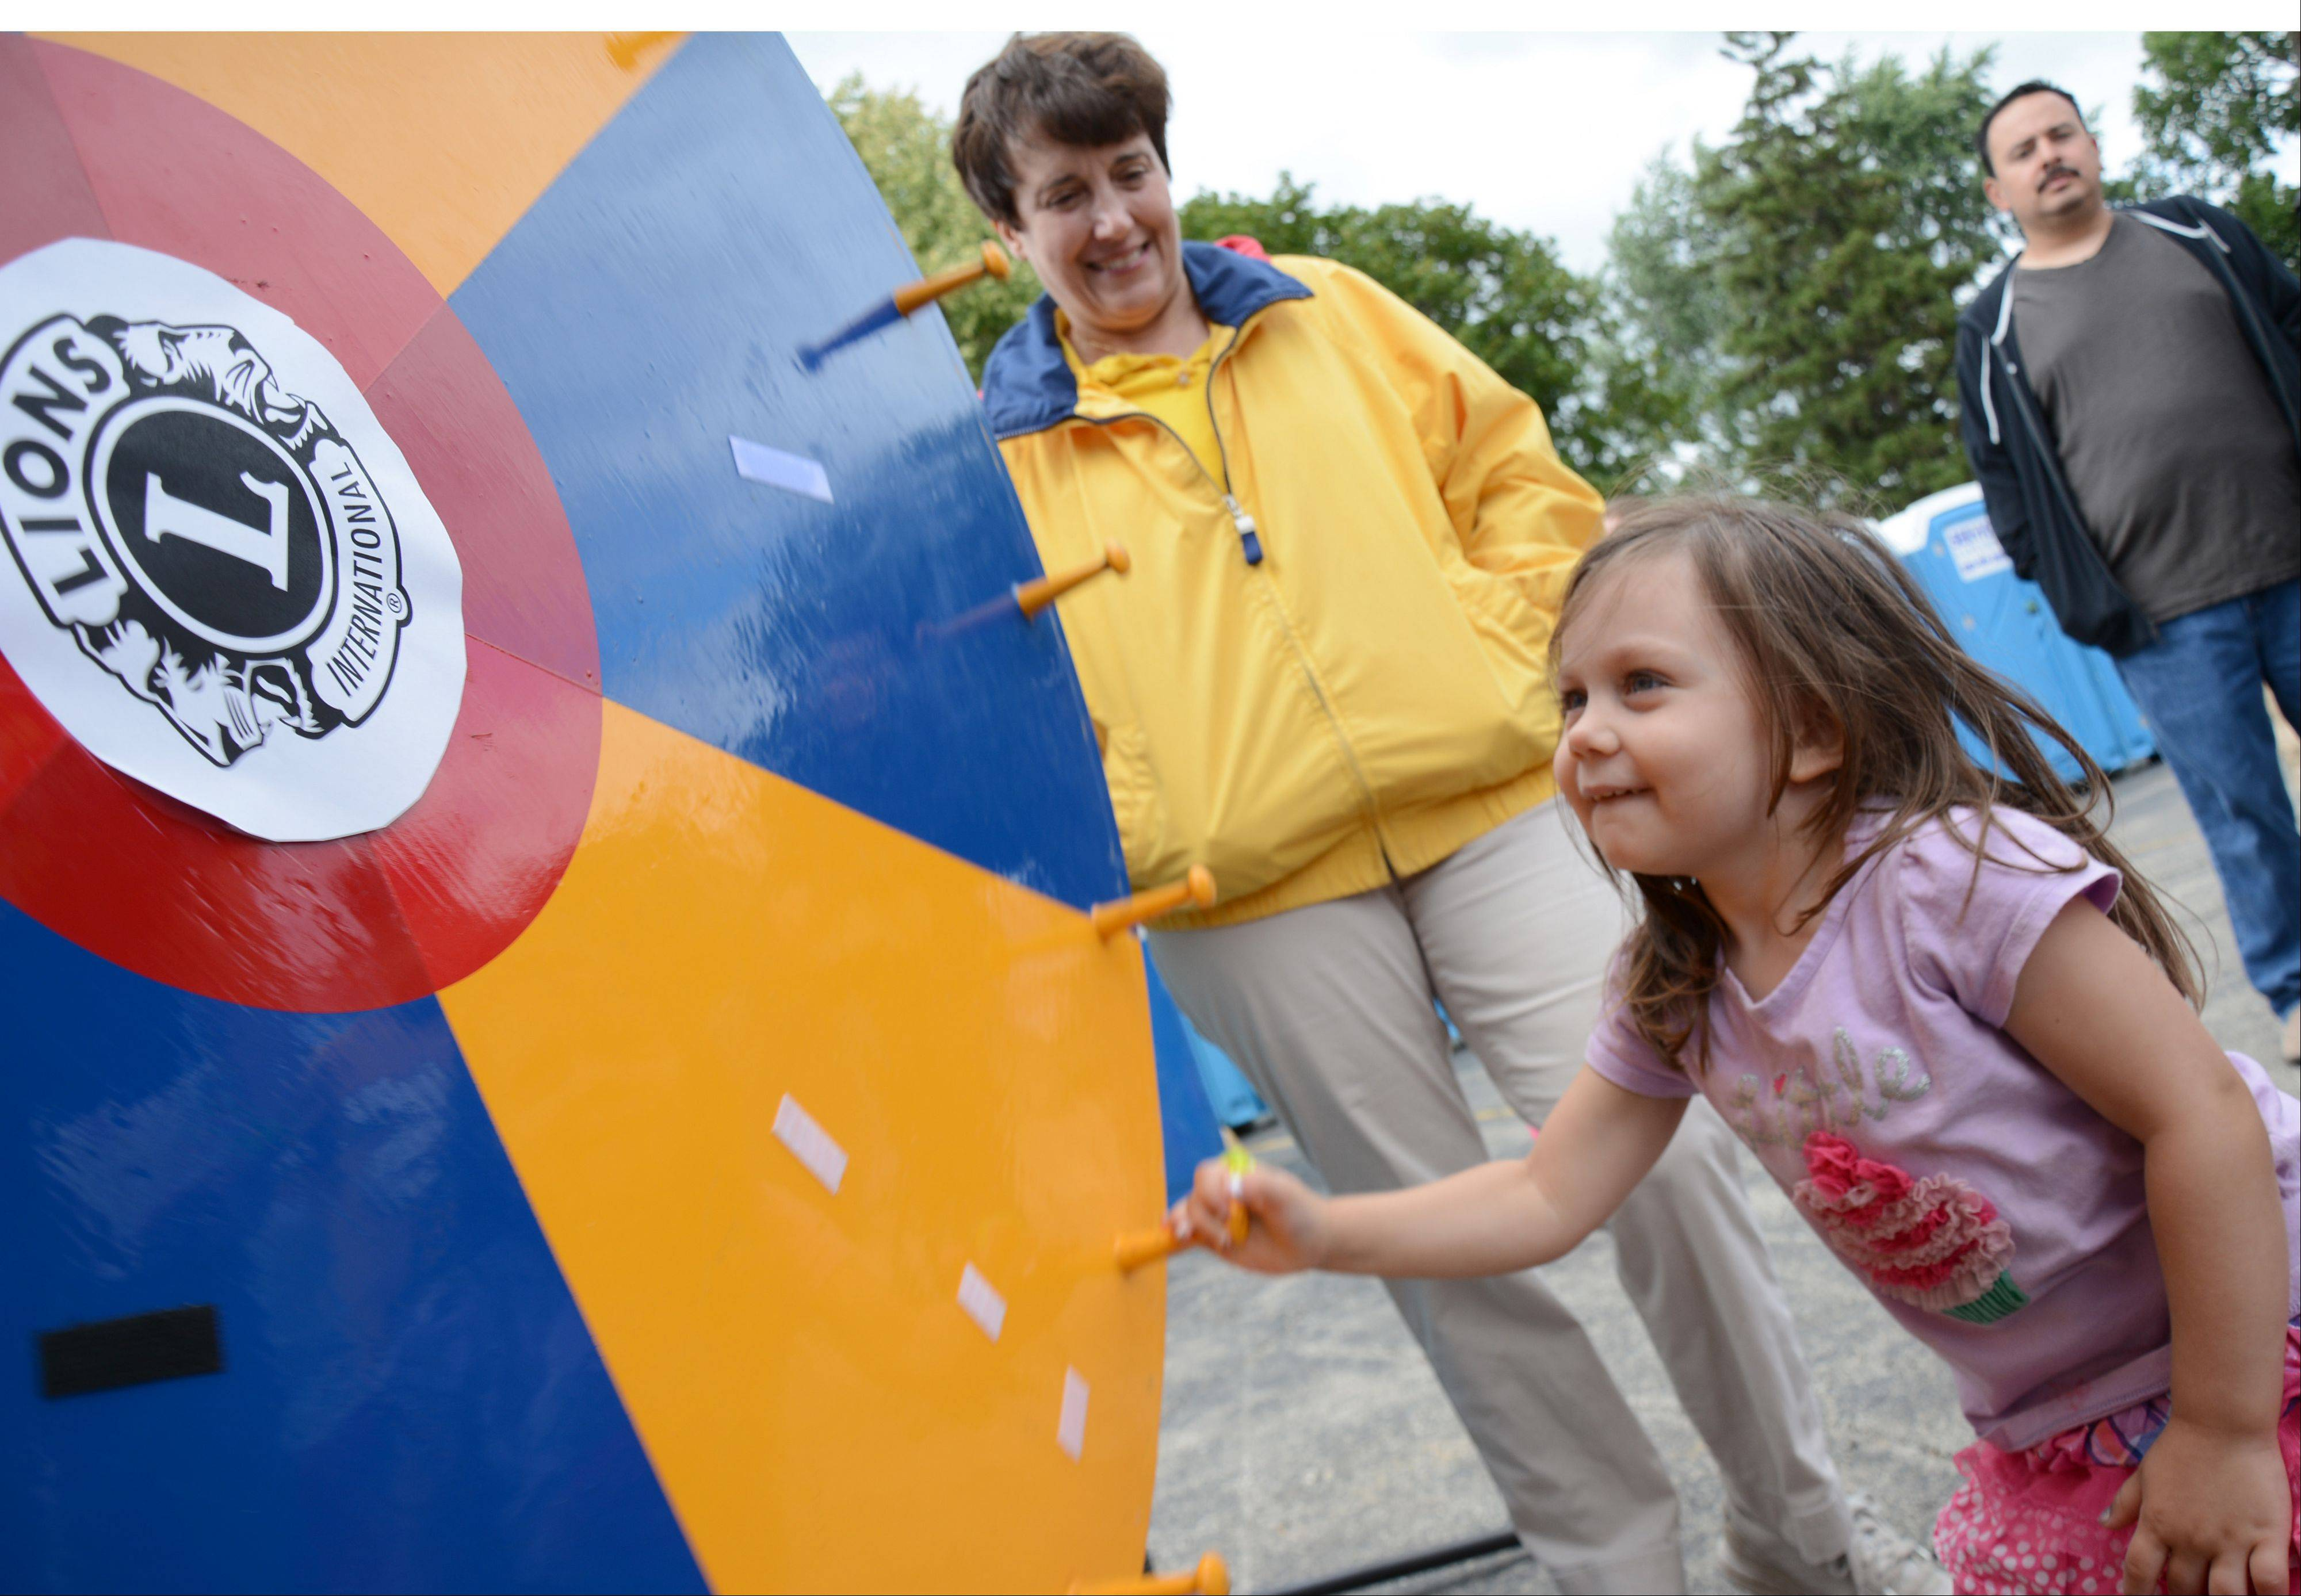 Ella Bain, 3, of Mount Prospect, spins a wheel to win a prize from the Mount Prospect Lions Club at the Mount Prospect Midsummer Downtown Block Party Saturday, July 27.